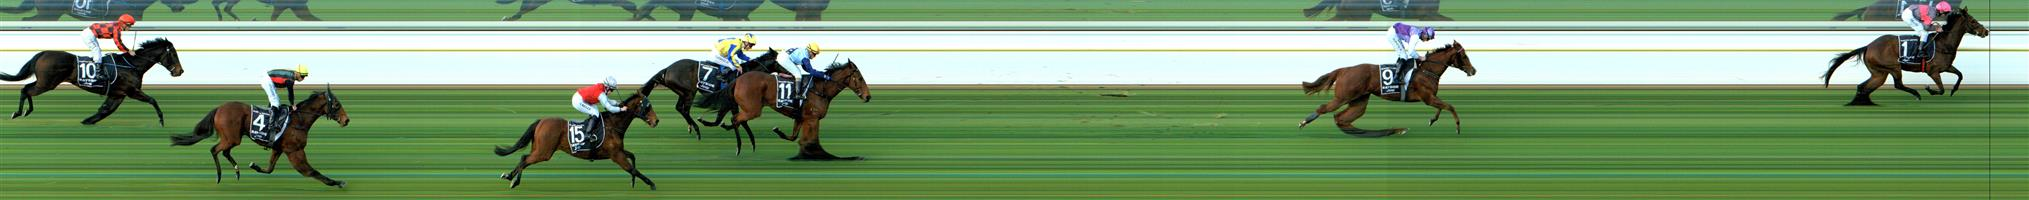 MURTOA Race 2 No. 7 Stinging Remark   Result : 4th at SP $3.30. Settled towards the front of the field but was basically three wide the trip. Unfortunately unable to go with the eventual winner and held its position to finish fourth. Outcome -1.50 Units.